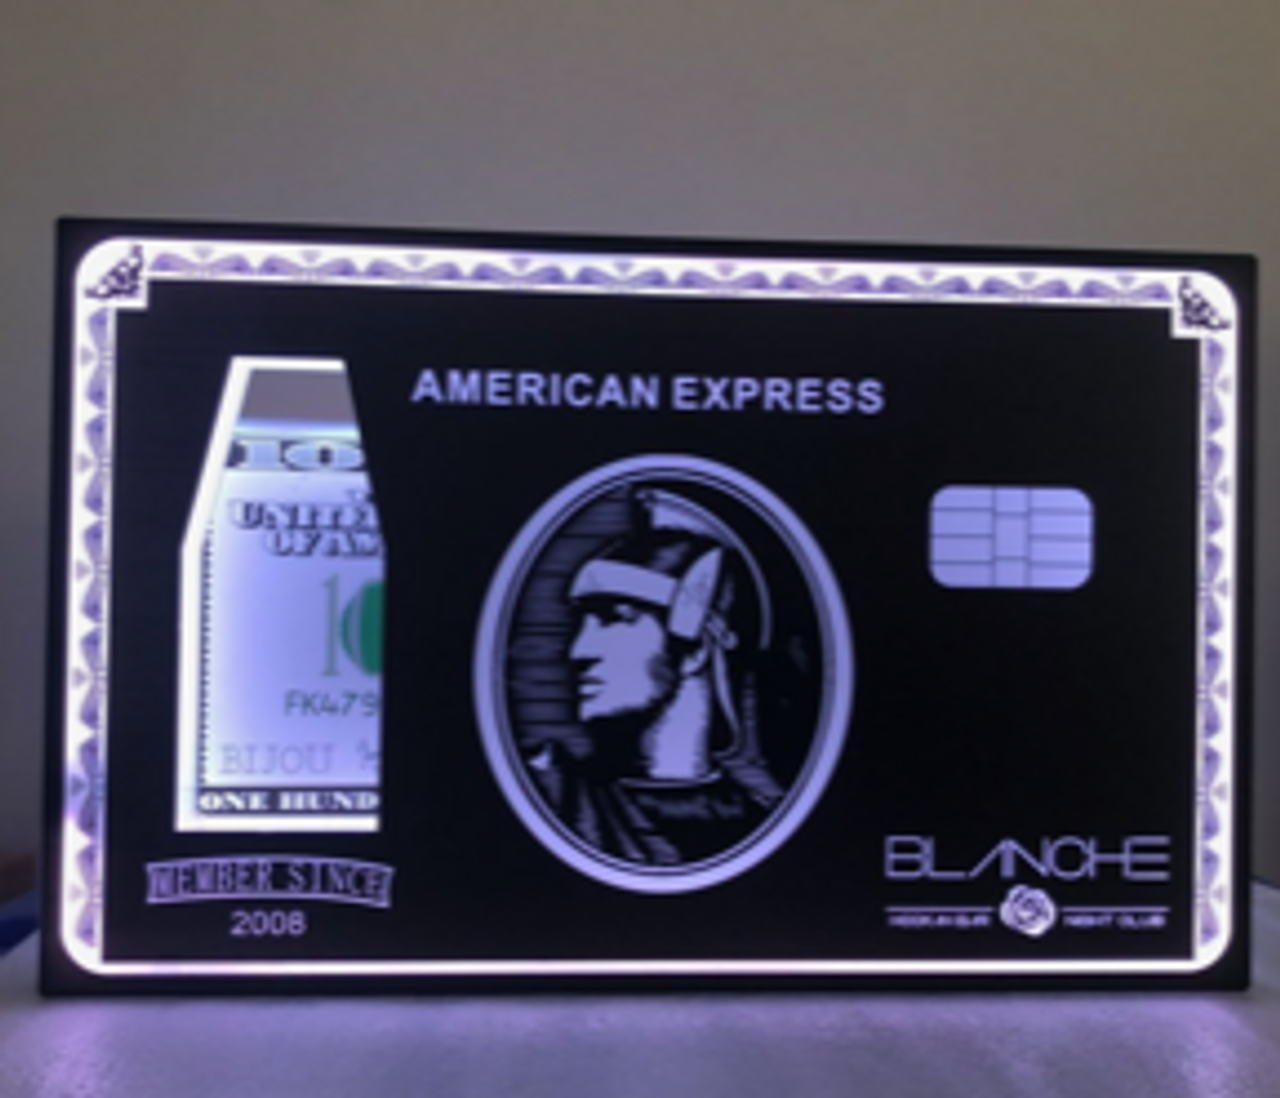 CREDIT CARD BOTTLE PRESENTER